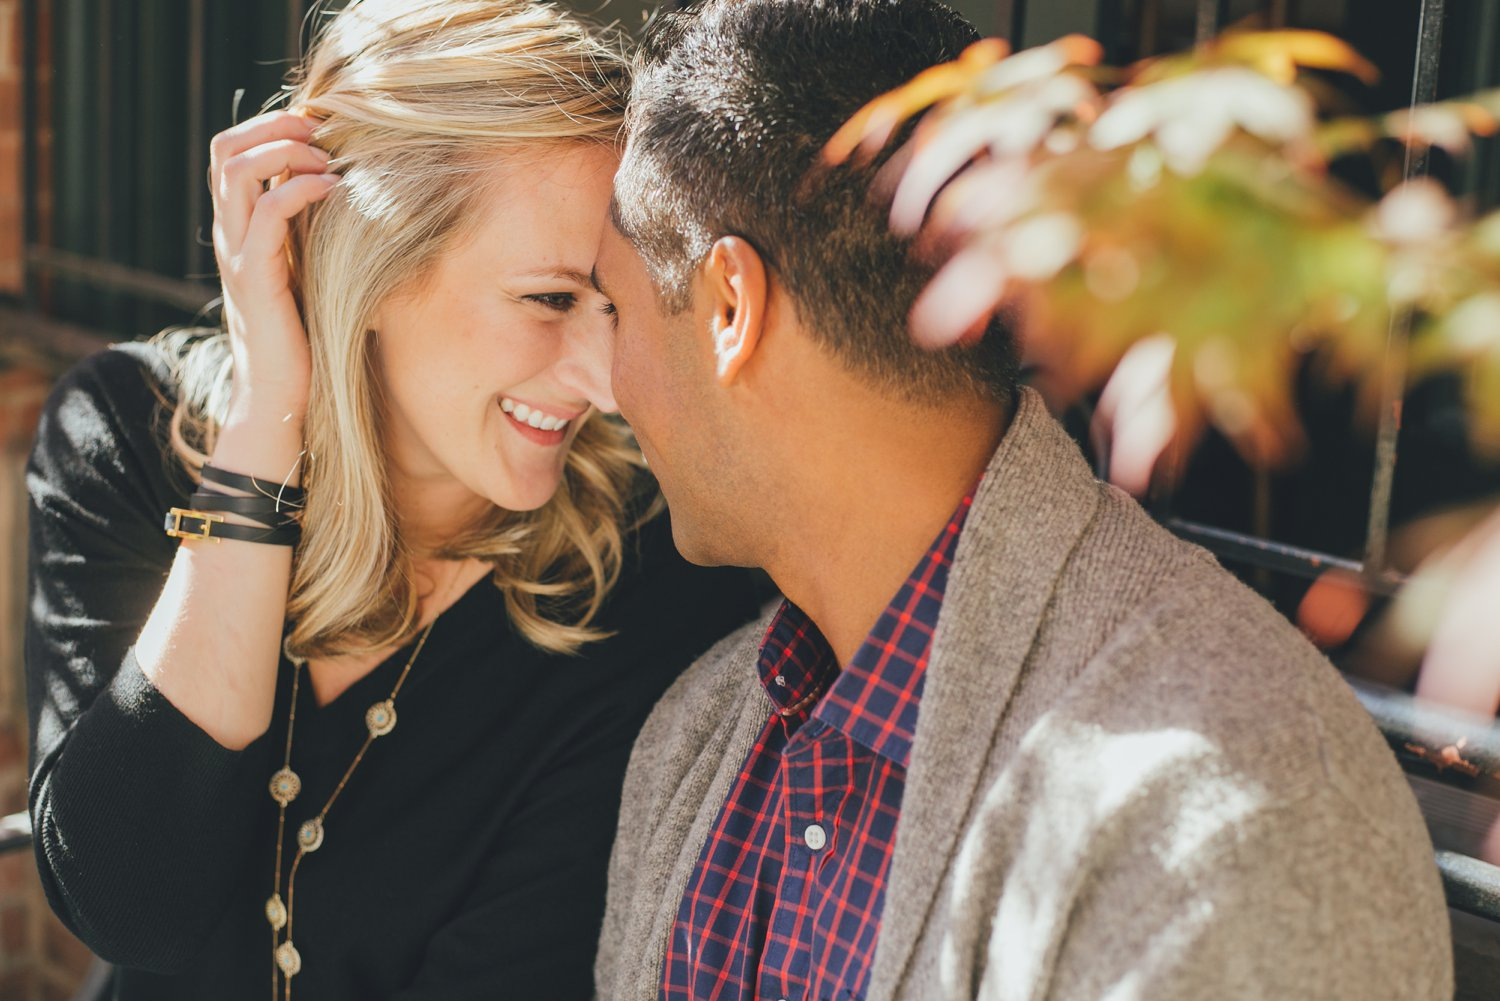 29NYC-NJ-ENGAGEMENT-PHOTOGRAPHY-BY-INTOTHESTORY-MOO-JAE.JPG